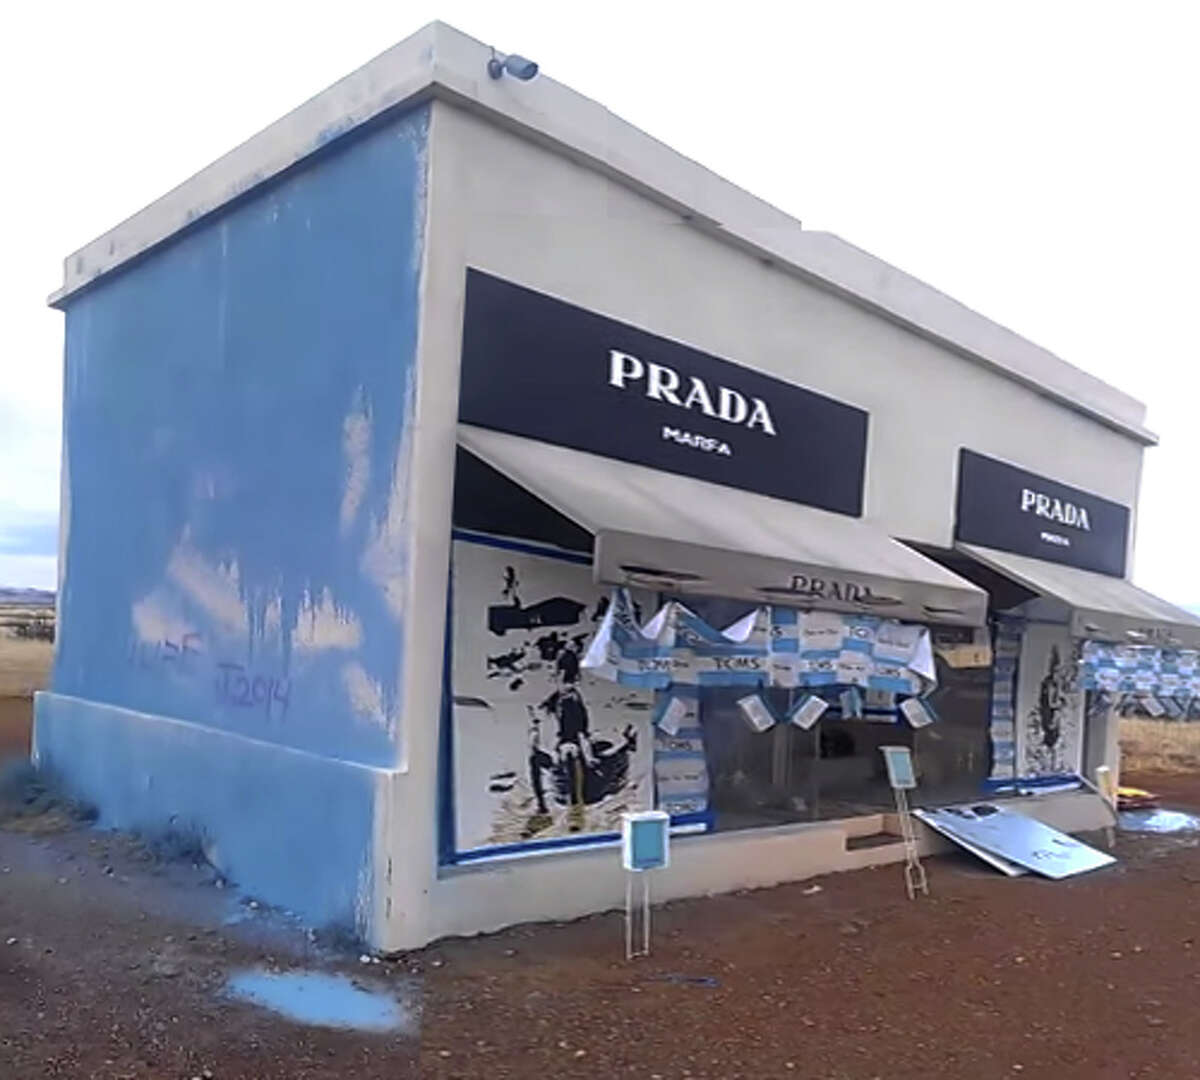 """A Texas artist has pleaded guilty to two counts of misdemeanor criminal mischief for vandalizing the famous Prada Marfa installation in Valentine. Joe Magnano, a 32-year-old man using the pseudonym """"927 1977,"""" will pay Ballroom Marfa, which maintains the structure, $10,700 to restore the piece and a $1,000 fine, Glasstire reported. He will also serve two years probation."""